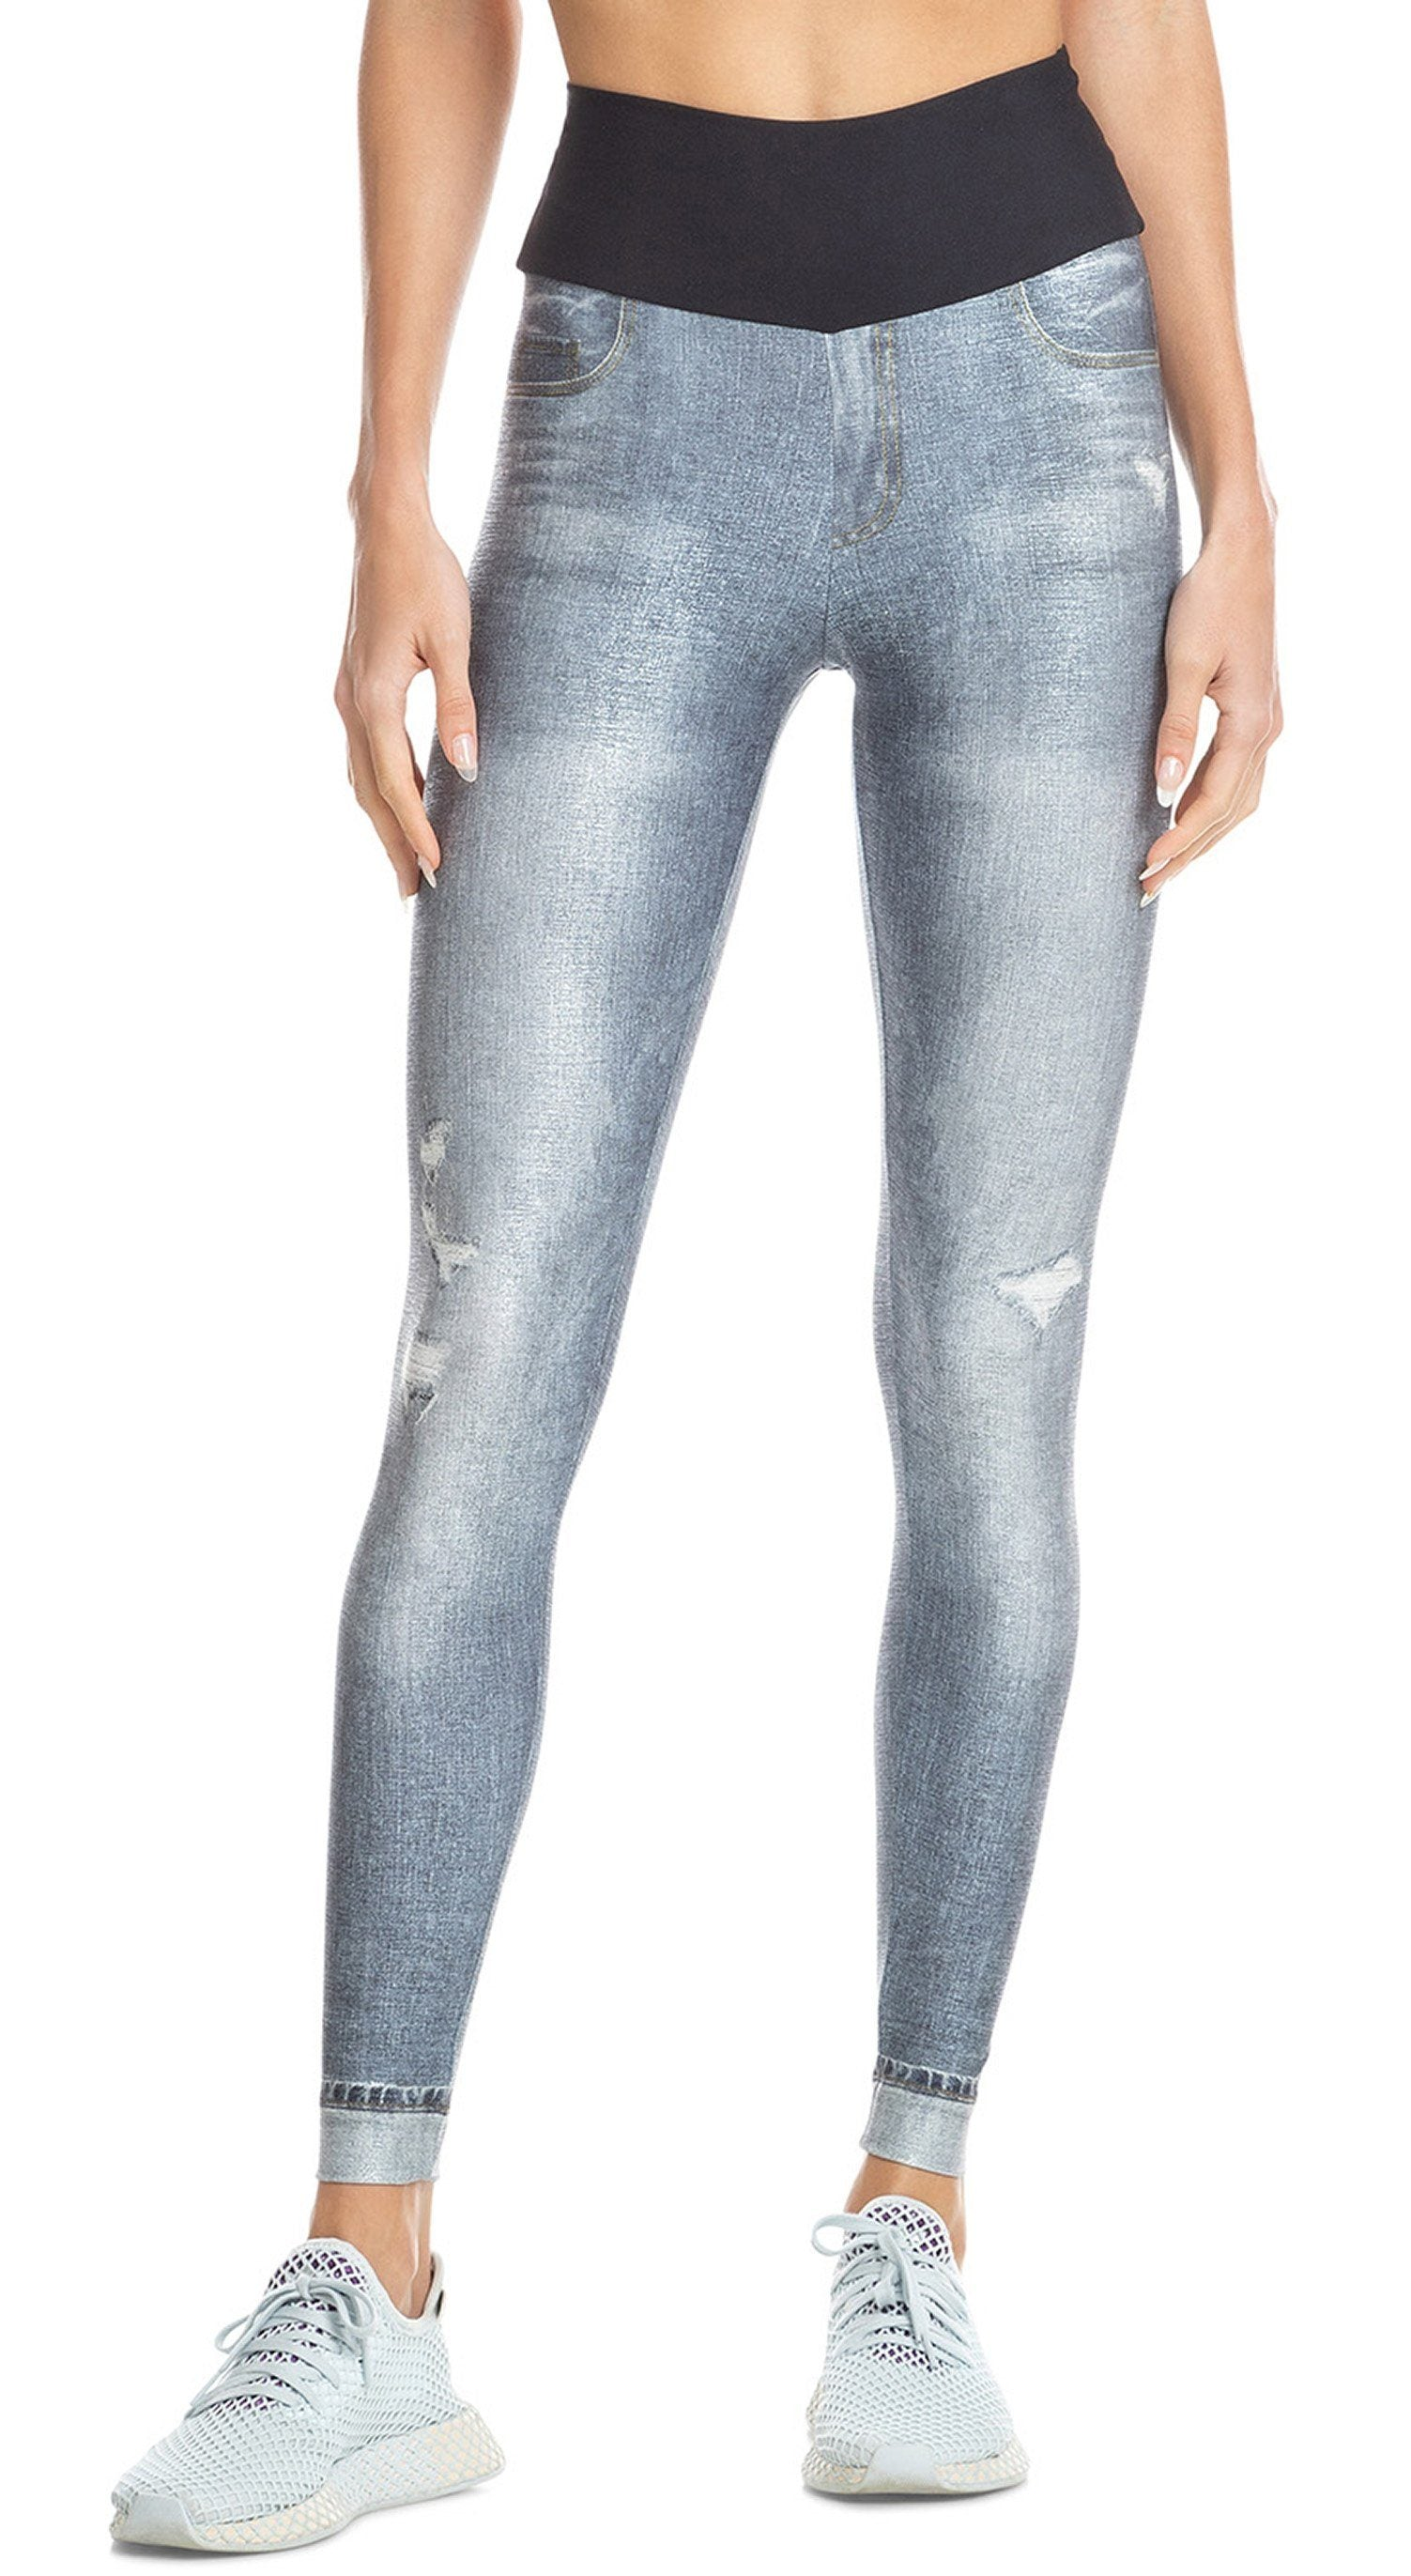 Mareled Jeans Legging